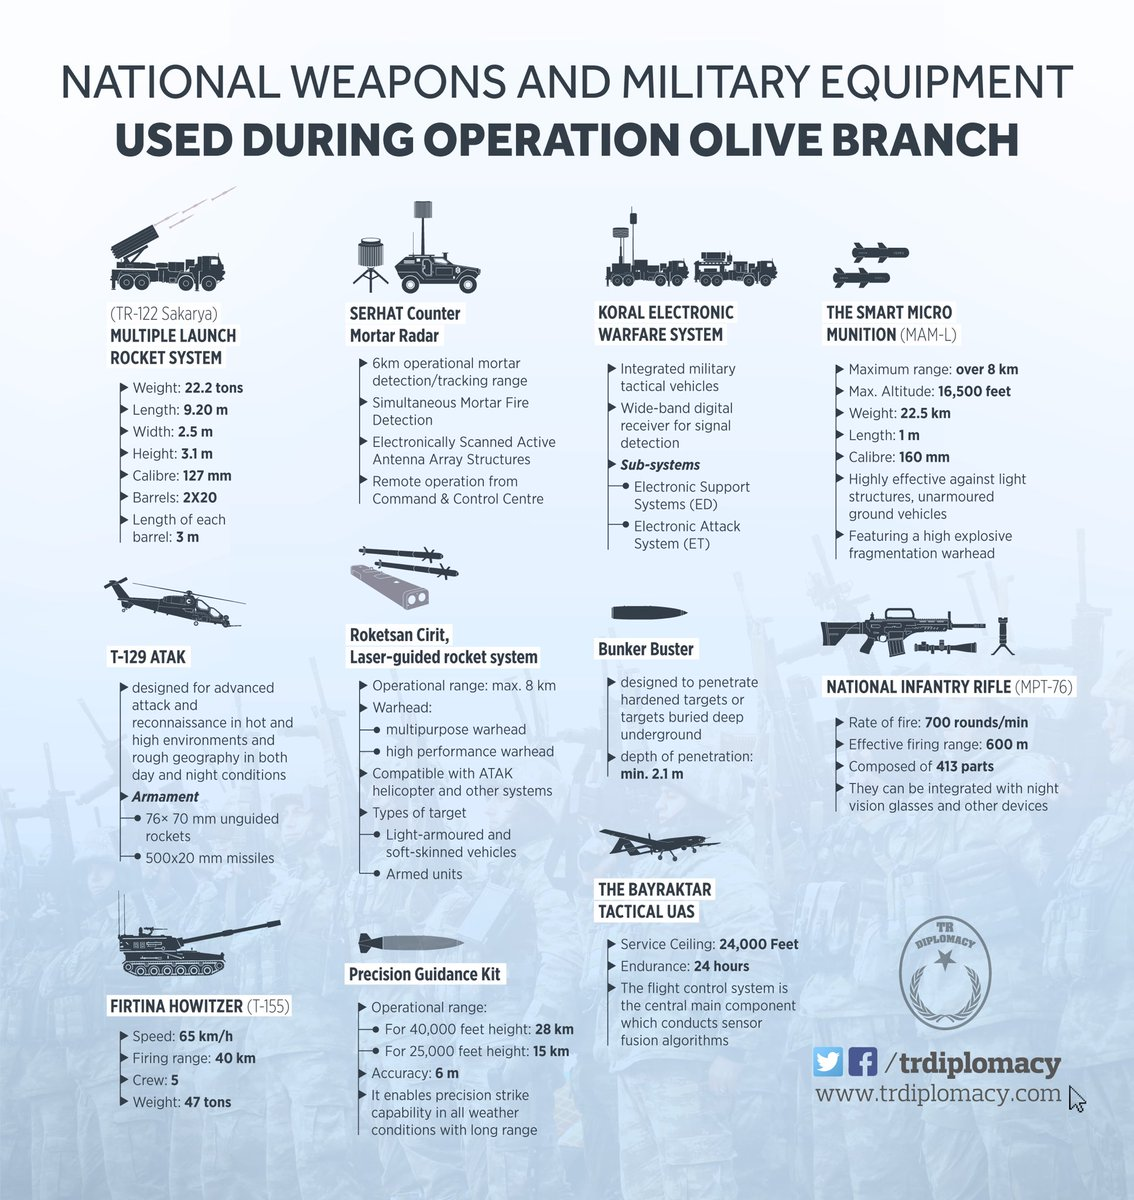 The weapons made in Turkey and used during Operation Olive Branch